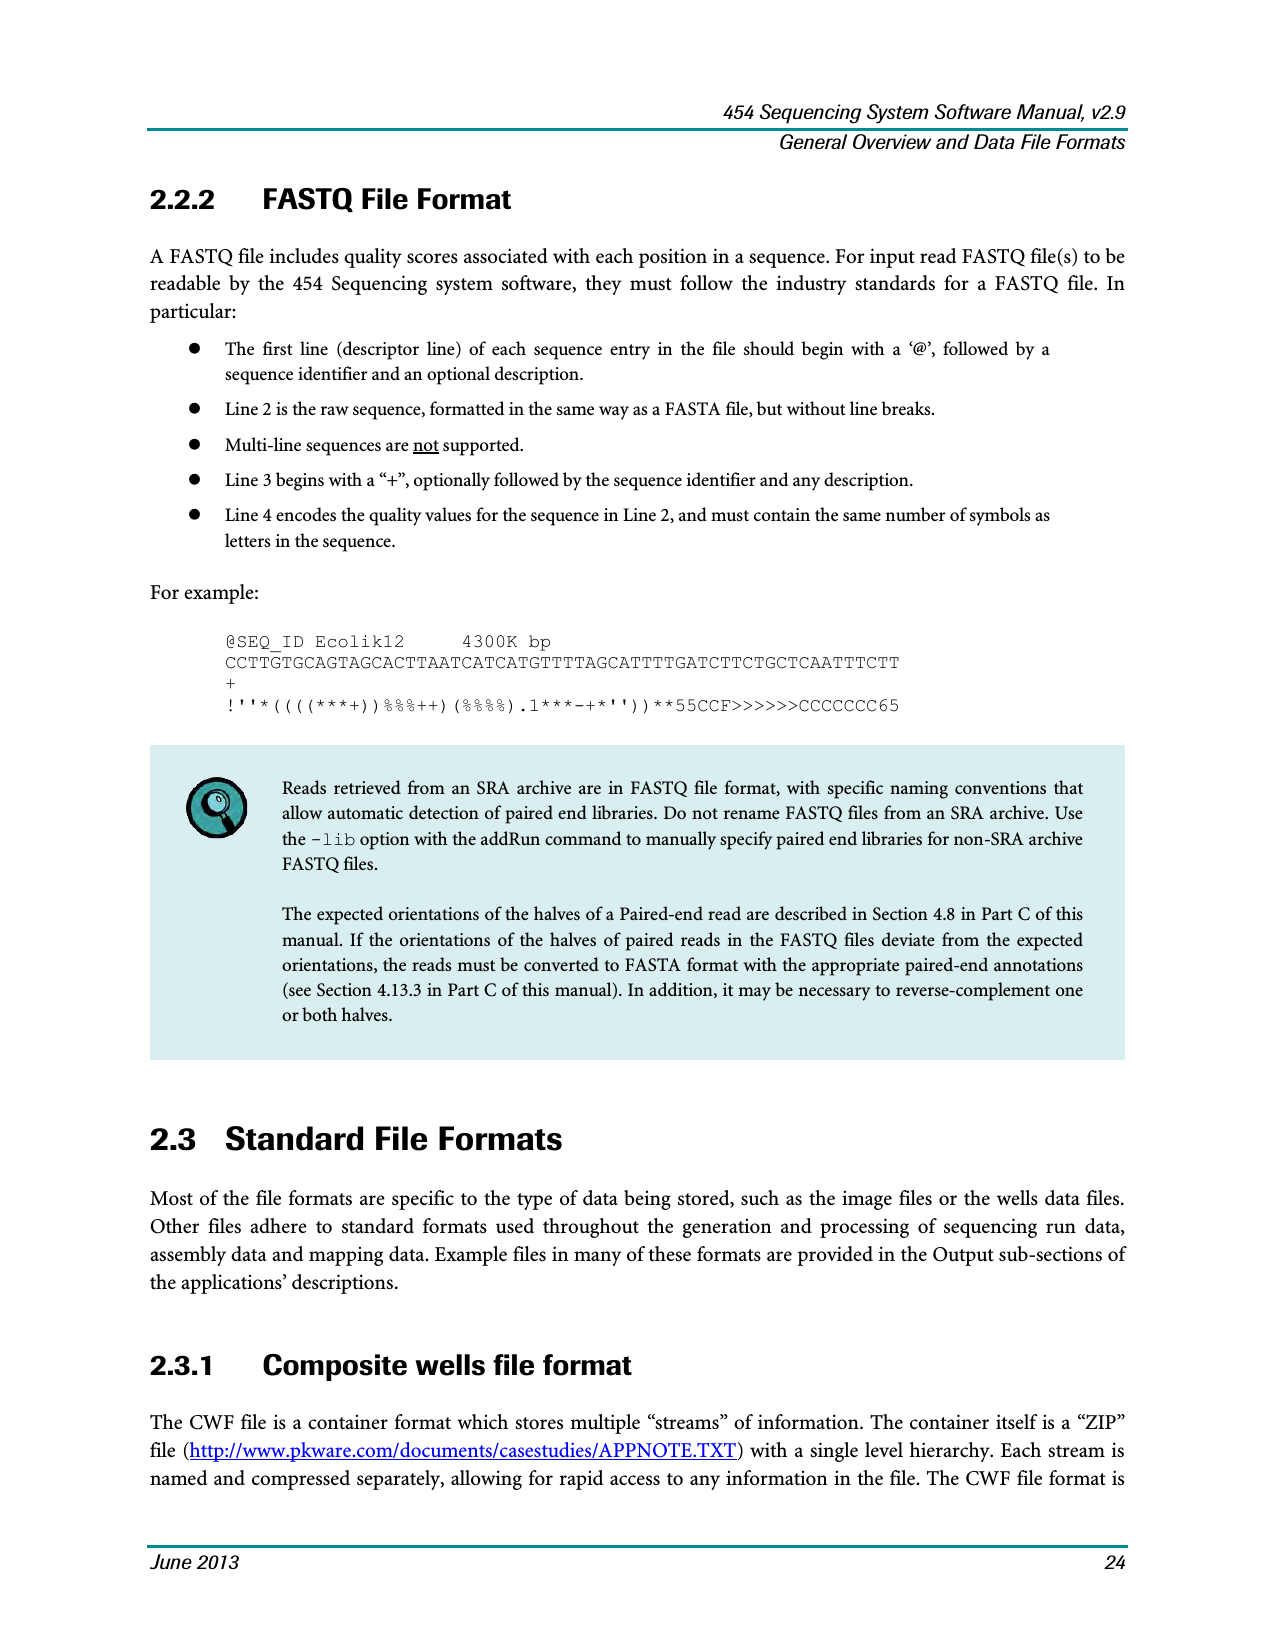 USM-00058.09_454SeqSys_SWManual-v2.9_Overview-24.png